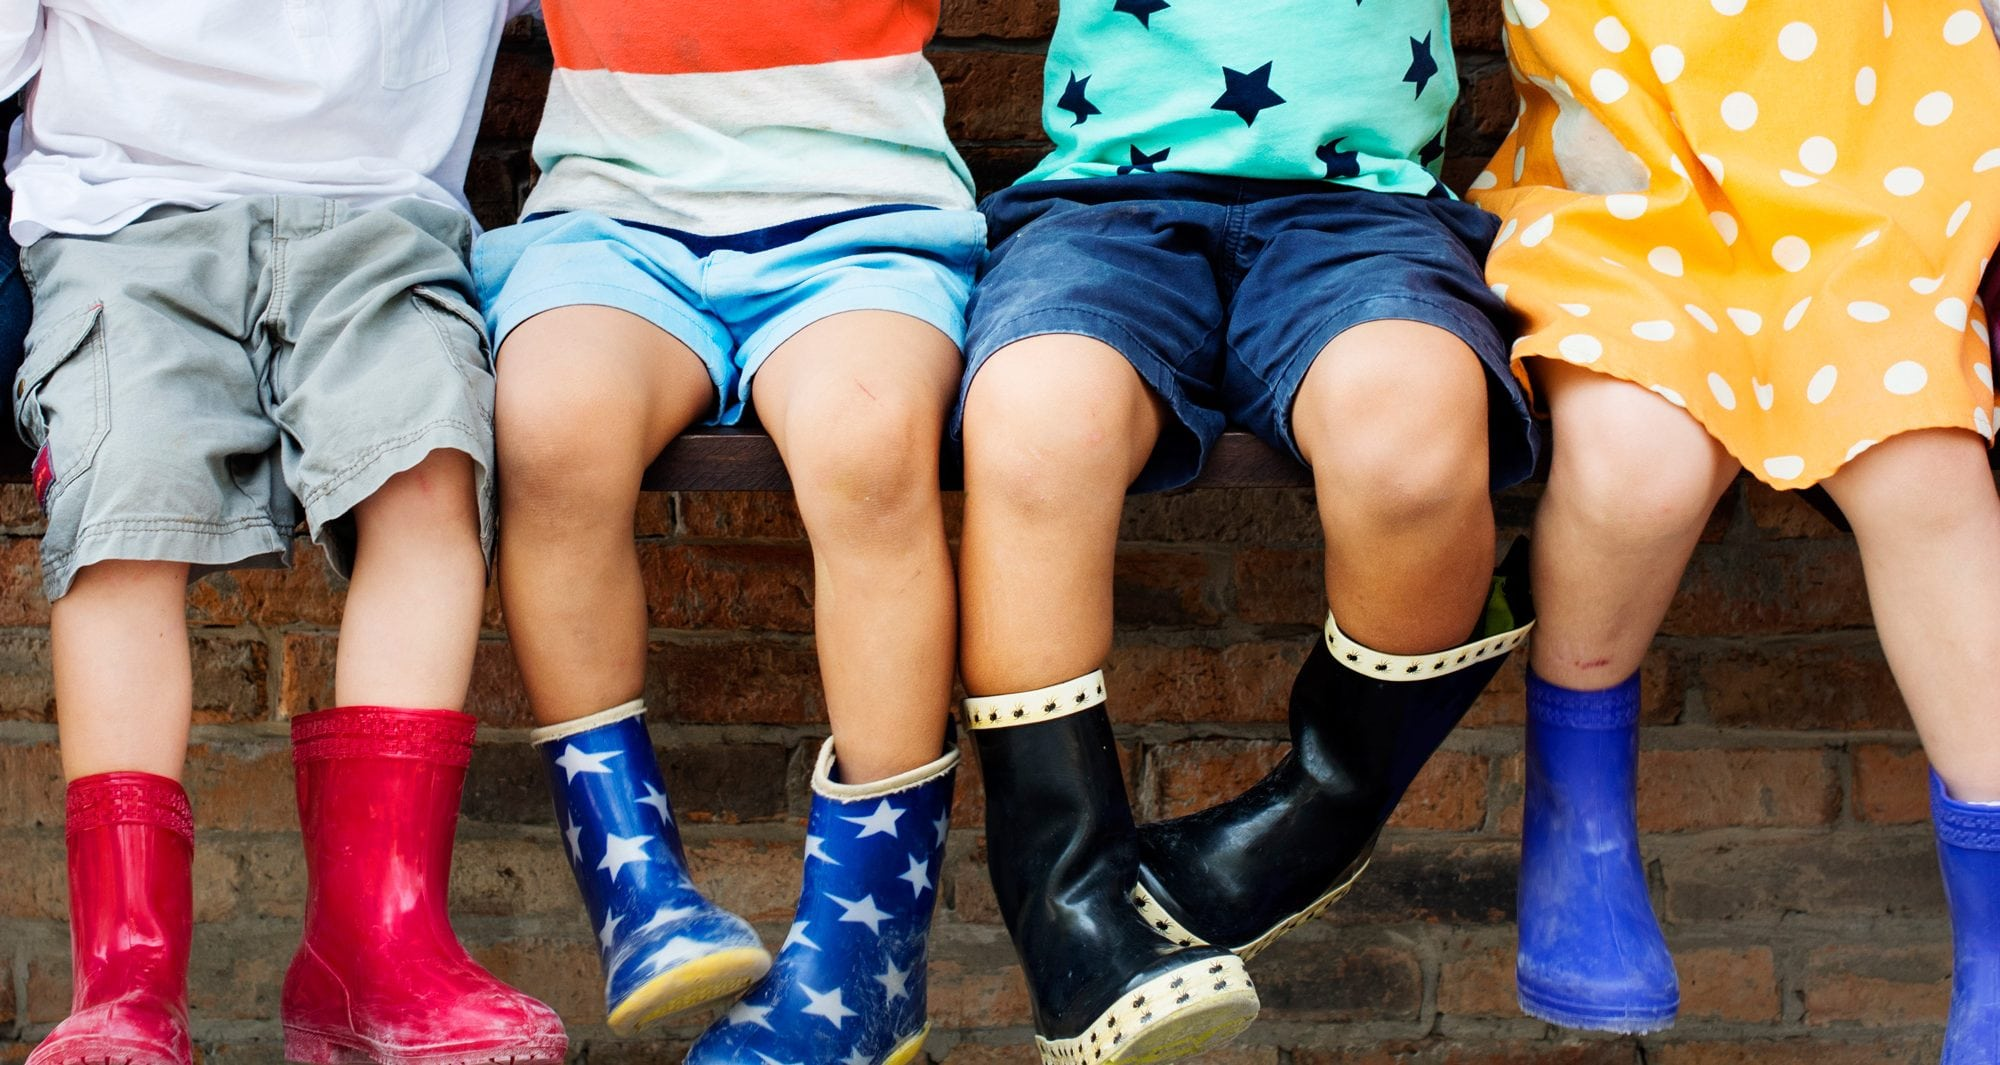 Children wearing welly boots sitting swinging legs